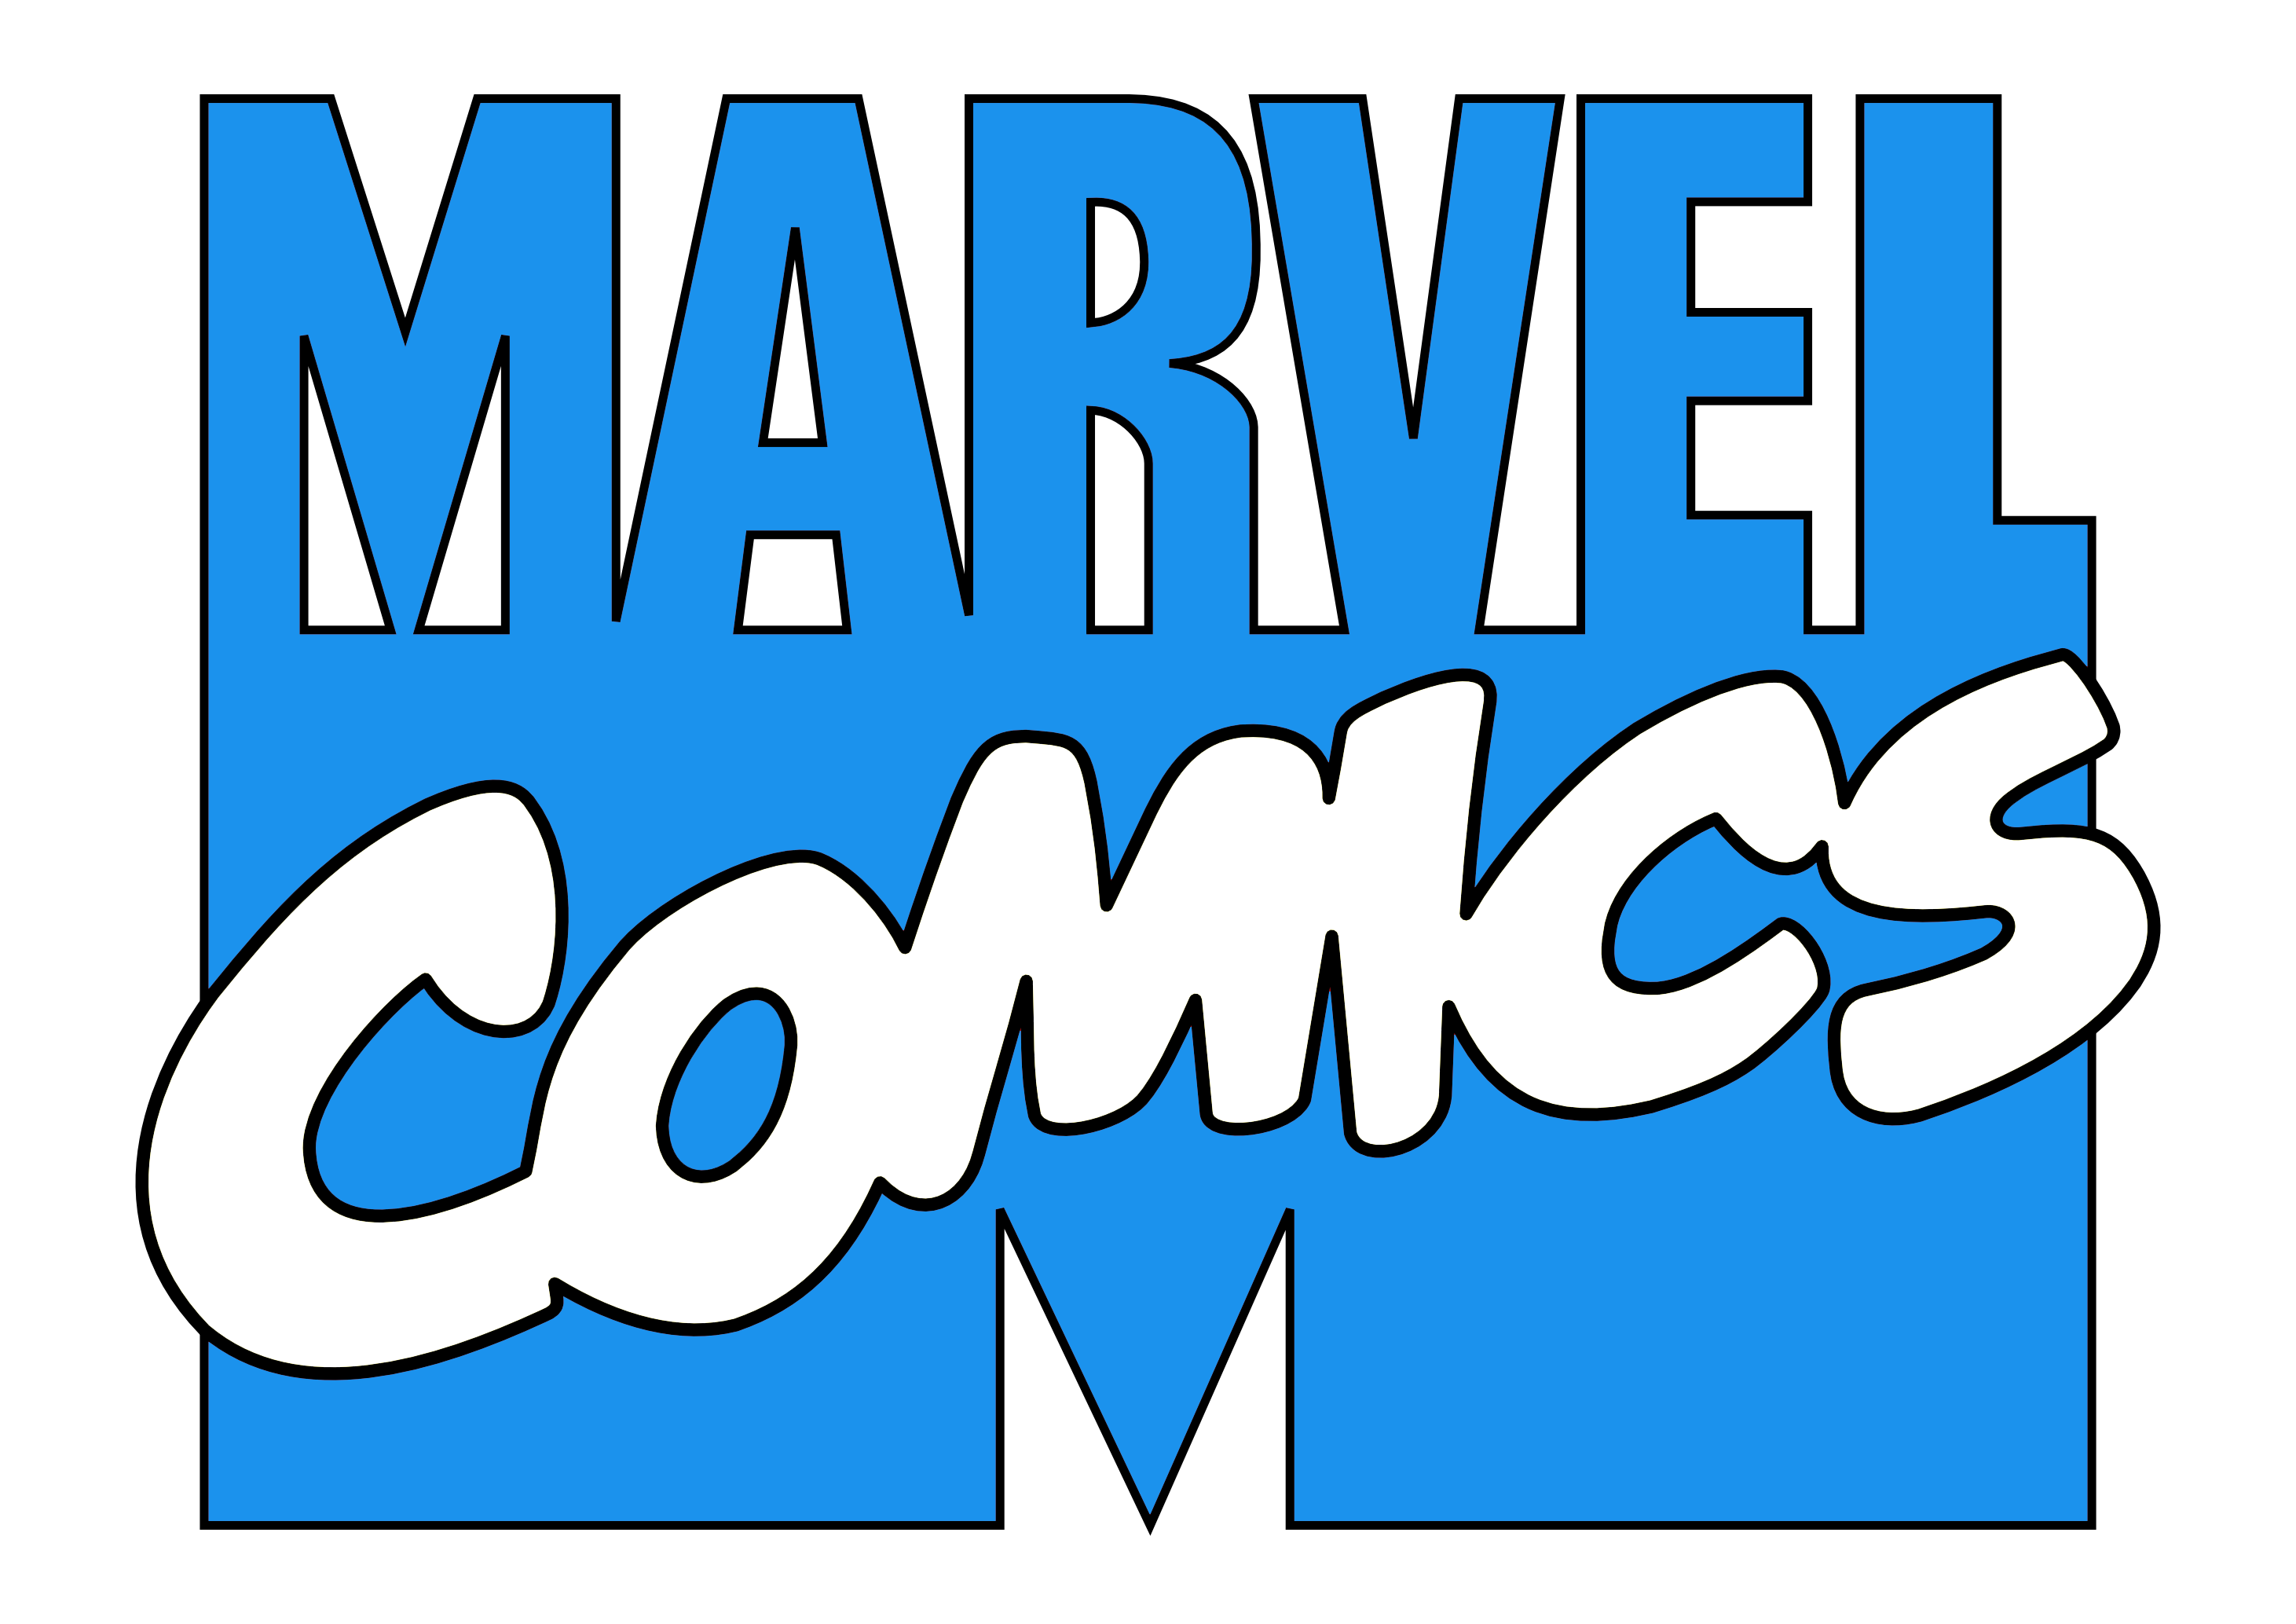 marvel comics logo blue and white emblem #40795